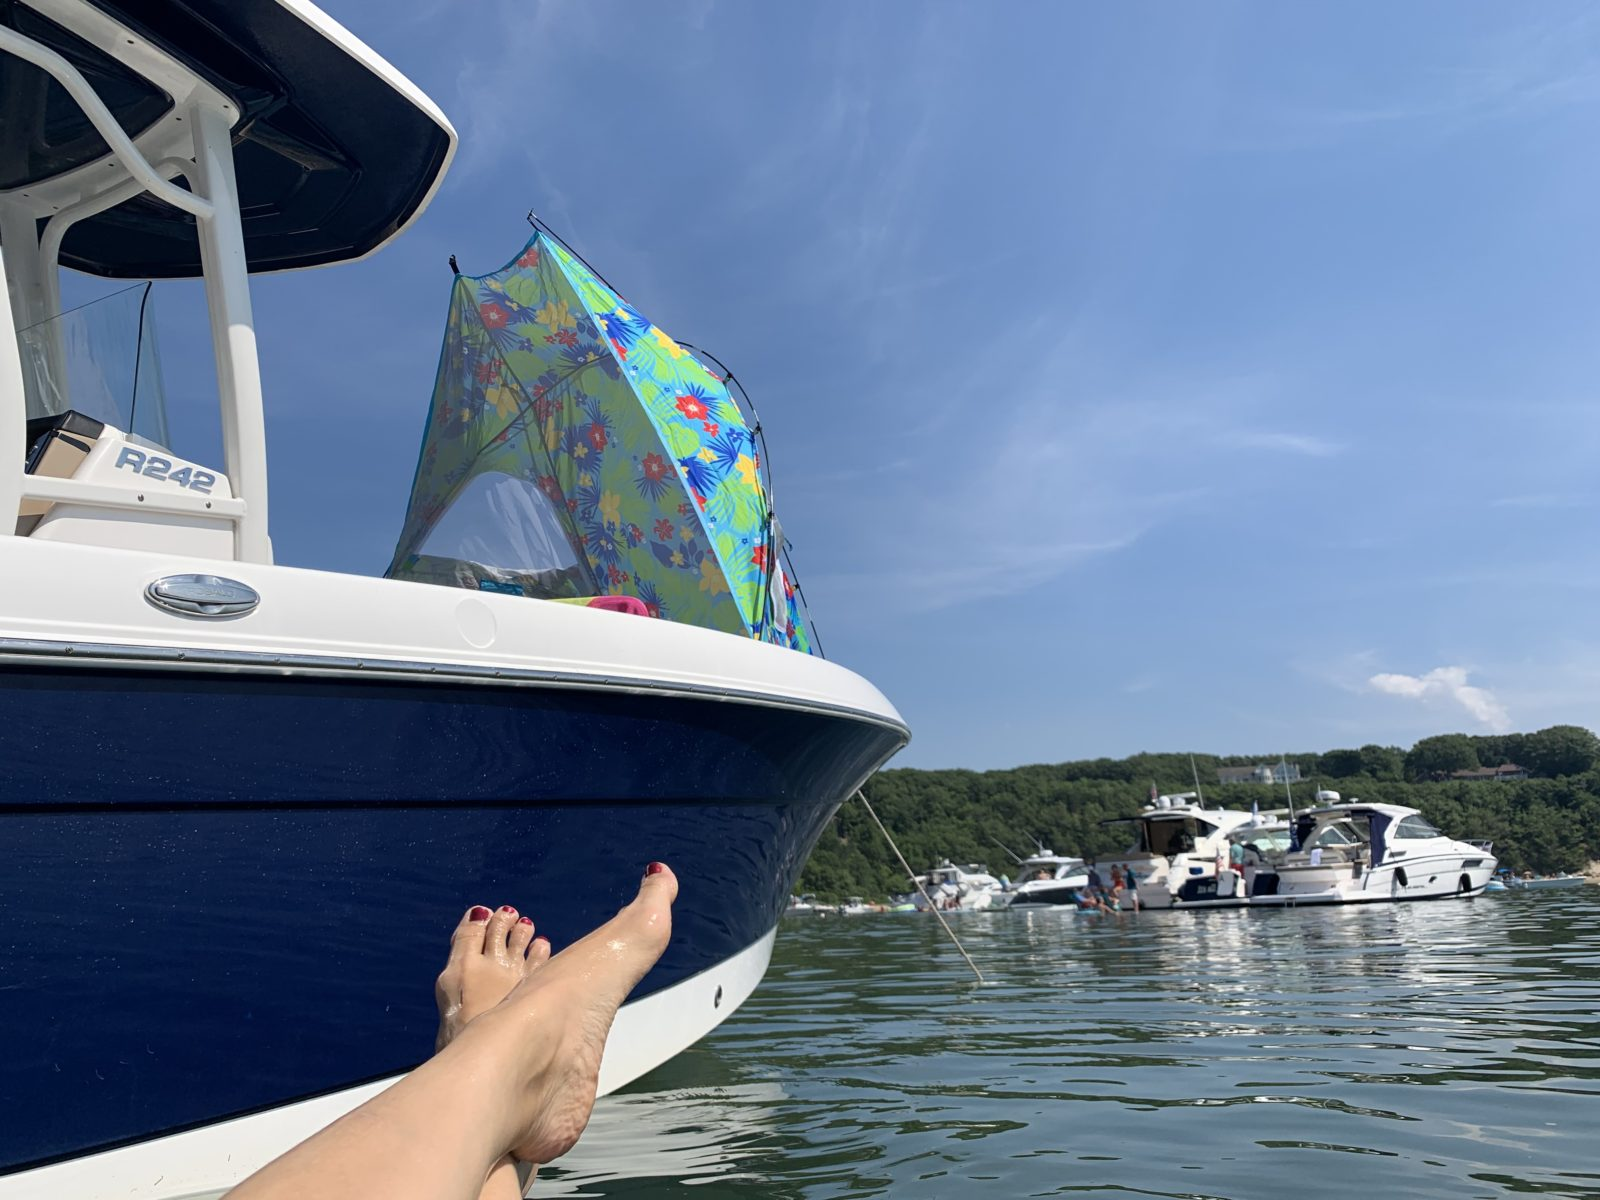 Just outside Port Jefferson Harbor, boaters can find a fun, socially distanced beach party.